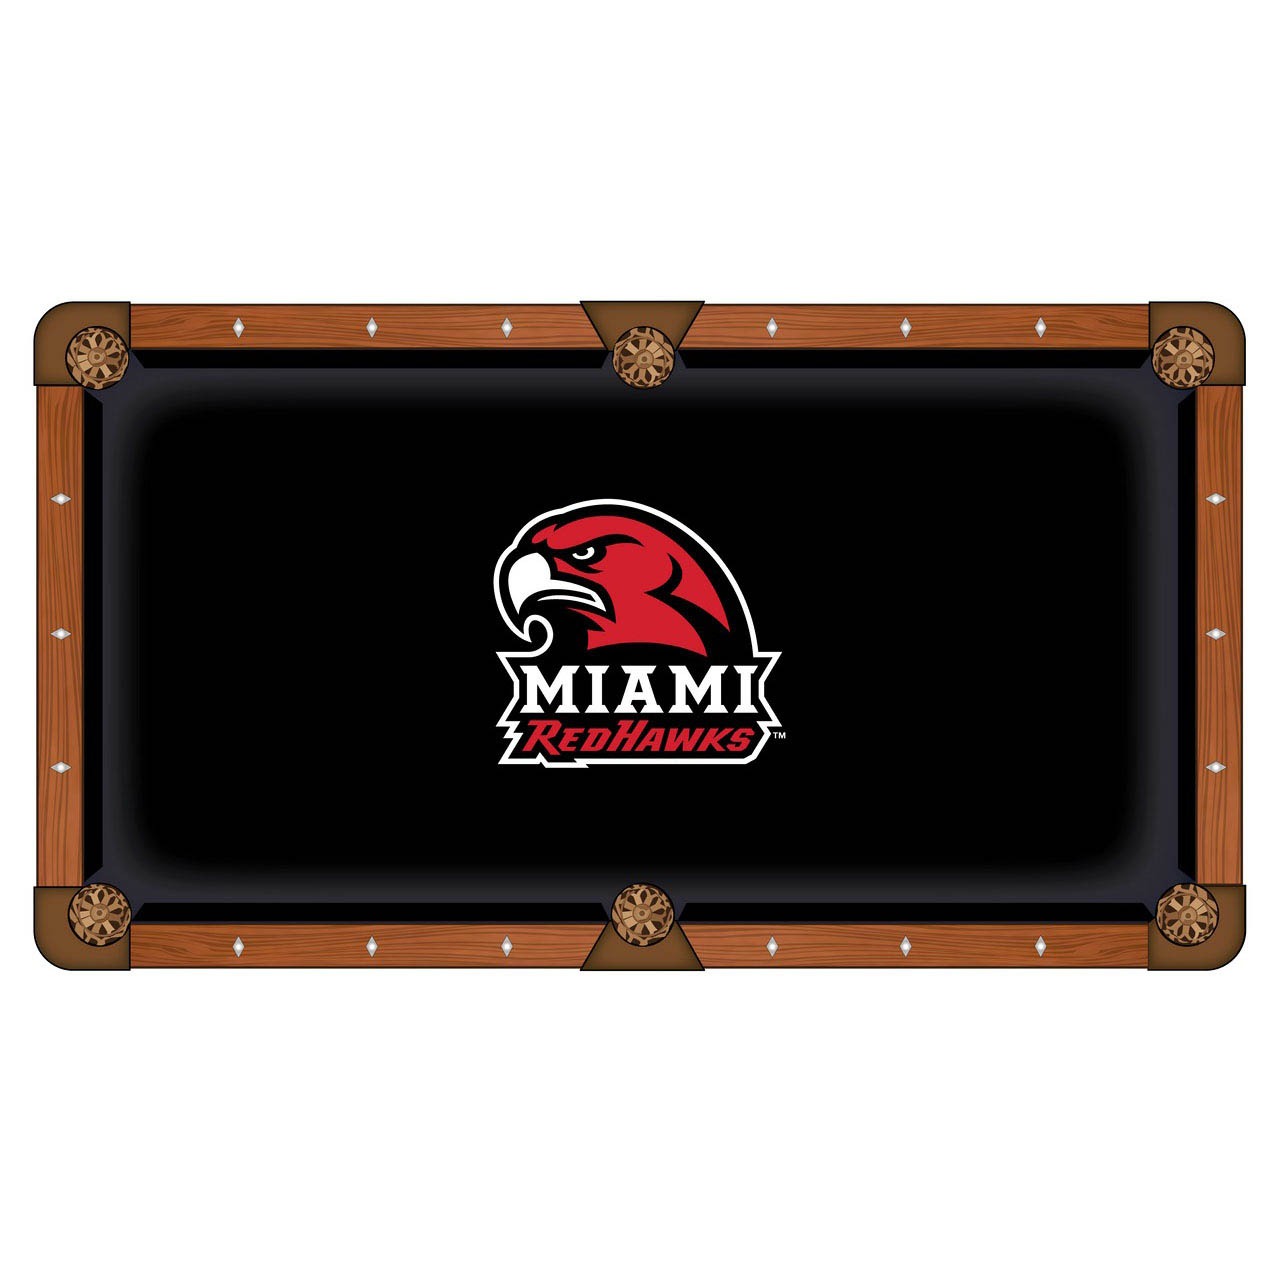 Stunning Miami University Ohio Pool Table Cloth Product Photo